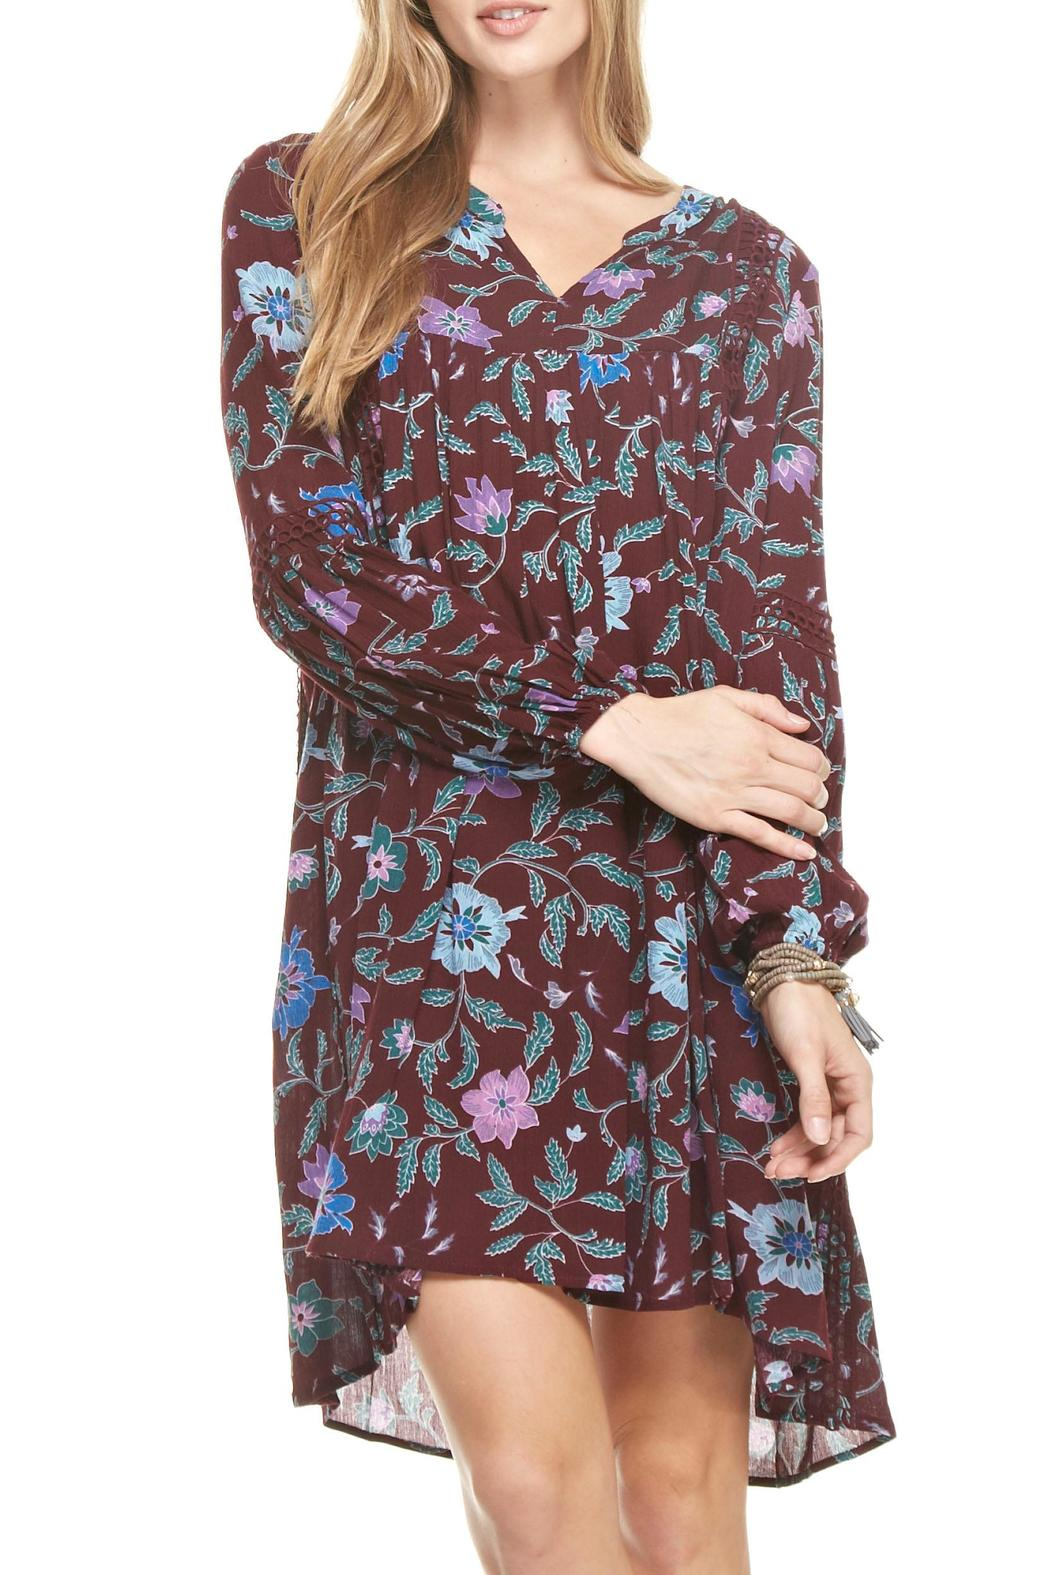 mittoshop merlot baby doll dress from charleston by apricot